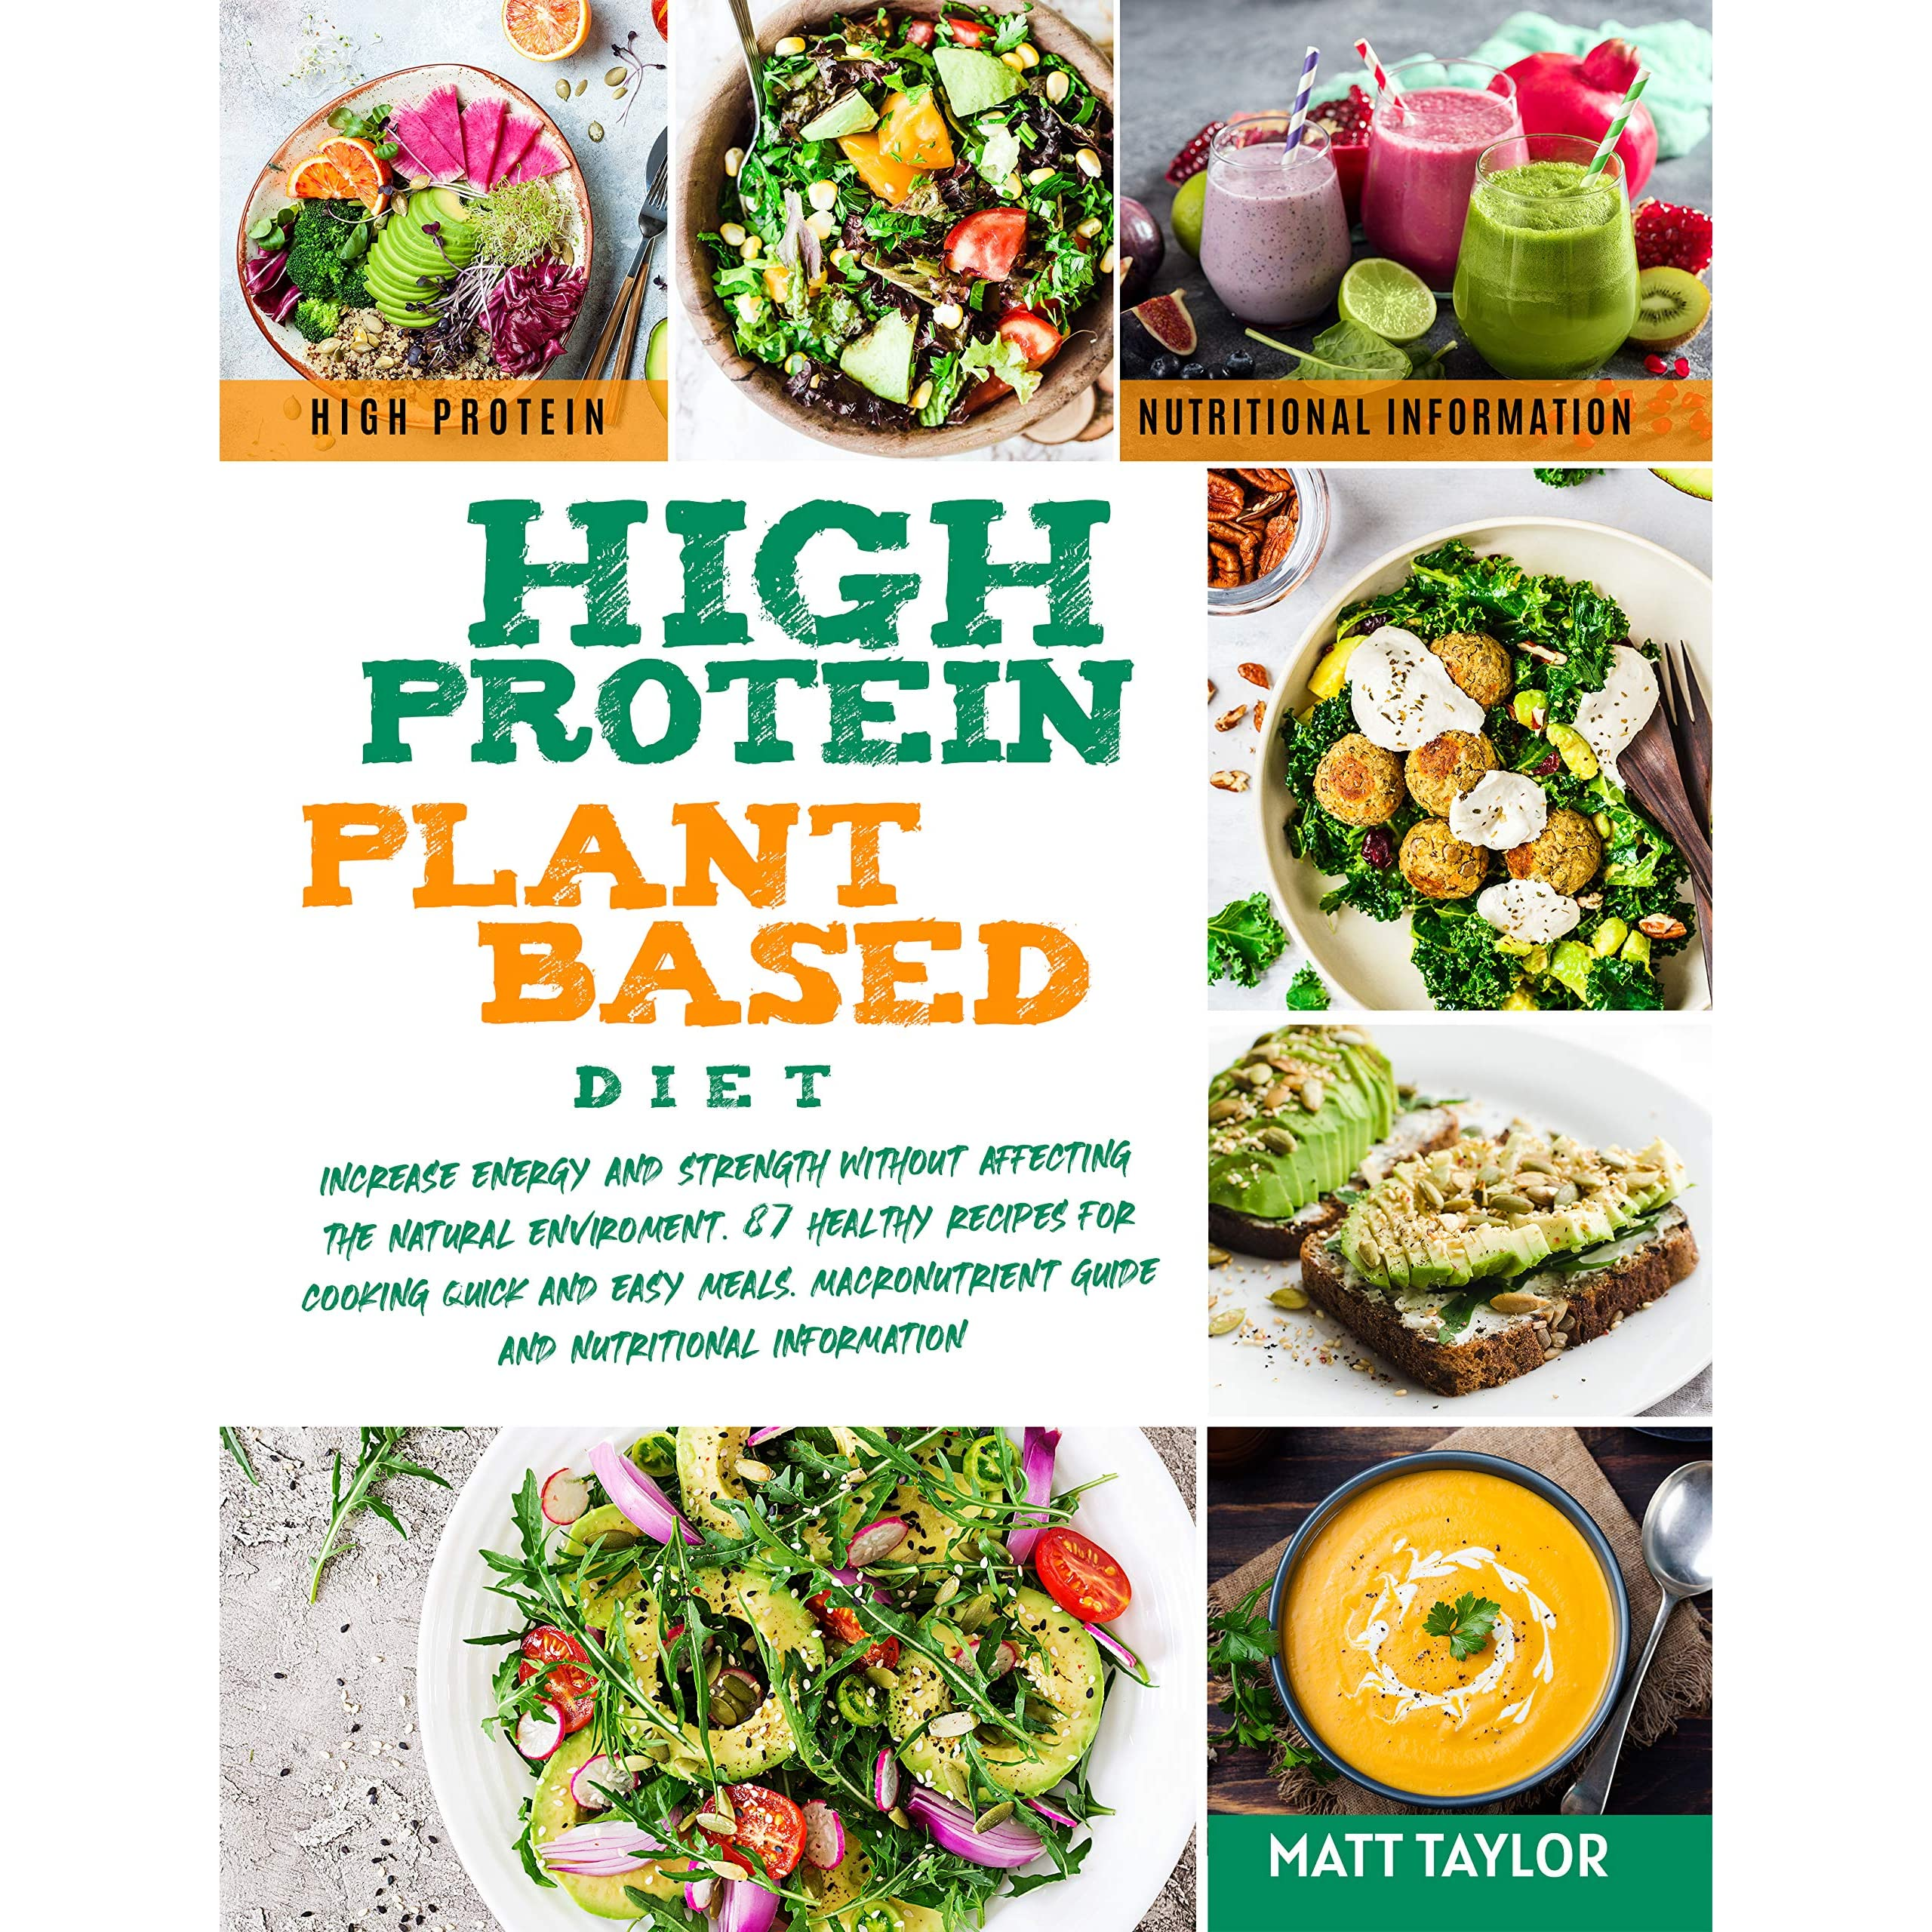 High Protein Plant Based Diet Increase Energy And Strenght Without Affecting The Natural Environment Healthy Recipes For Cooking Quick And Easy Meals Guide And Nutritional Information By Matt Taylor